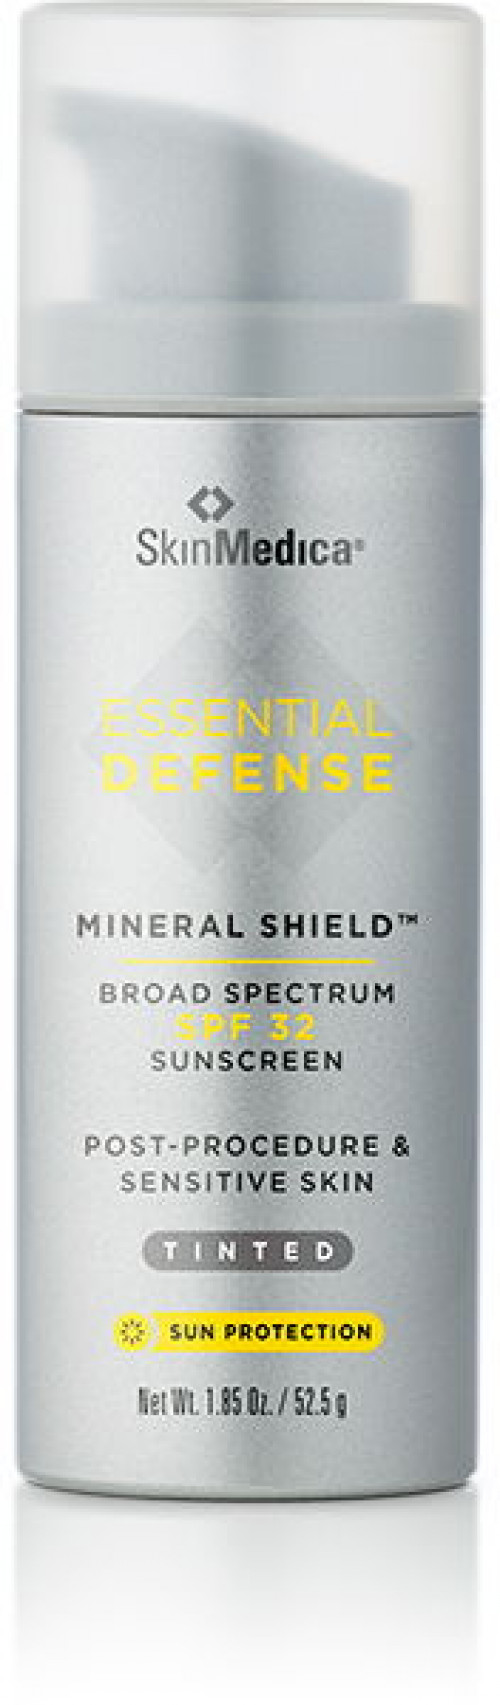 Essential Defense Mineral Shield SPF 32 by SkinMedica